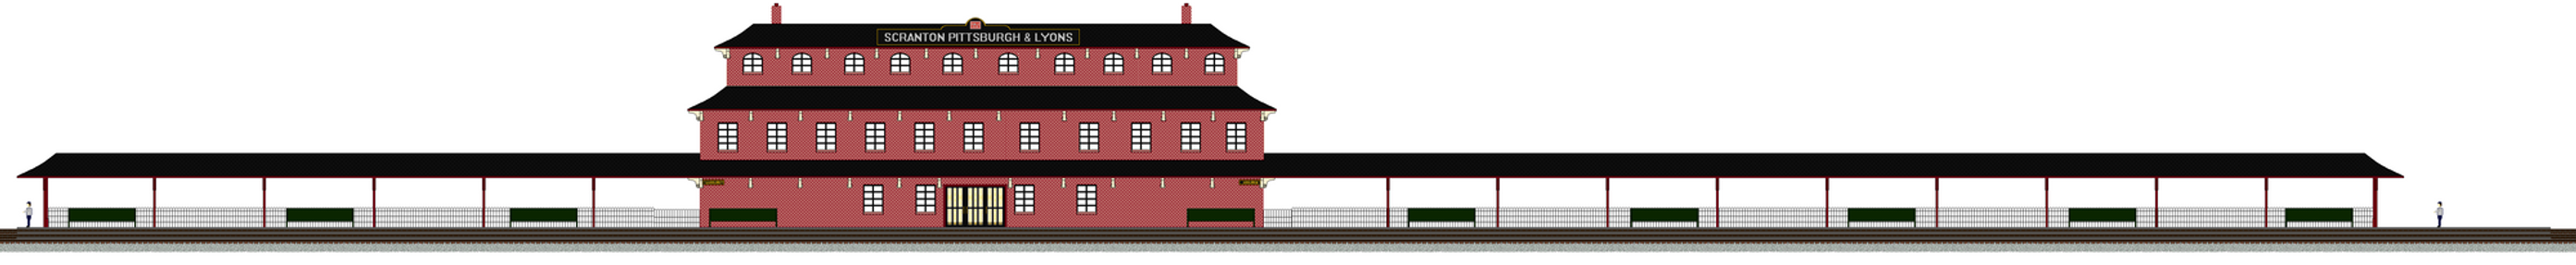 SPL Williamsport station by Andrewk4